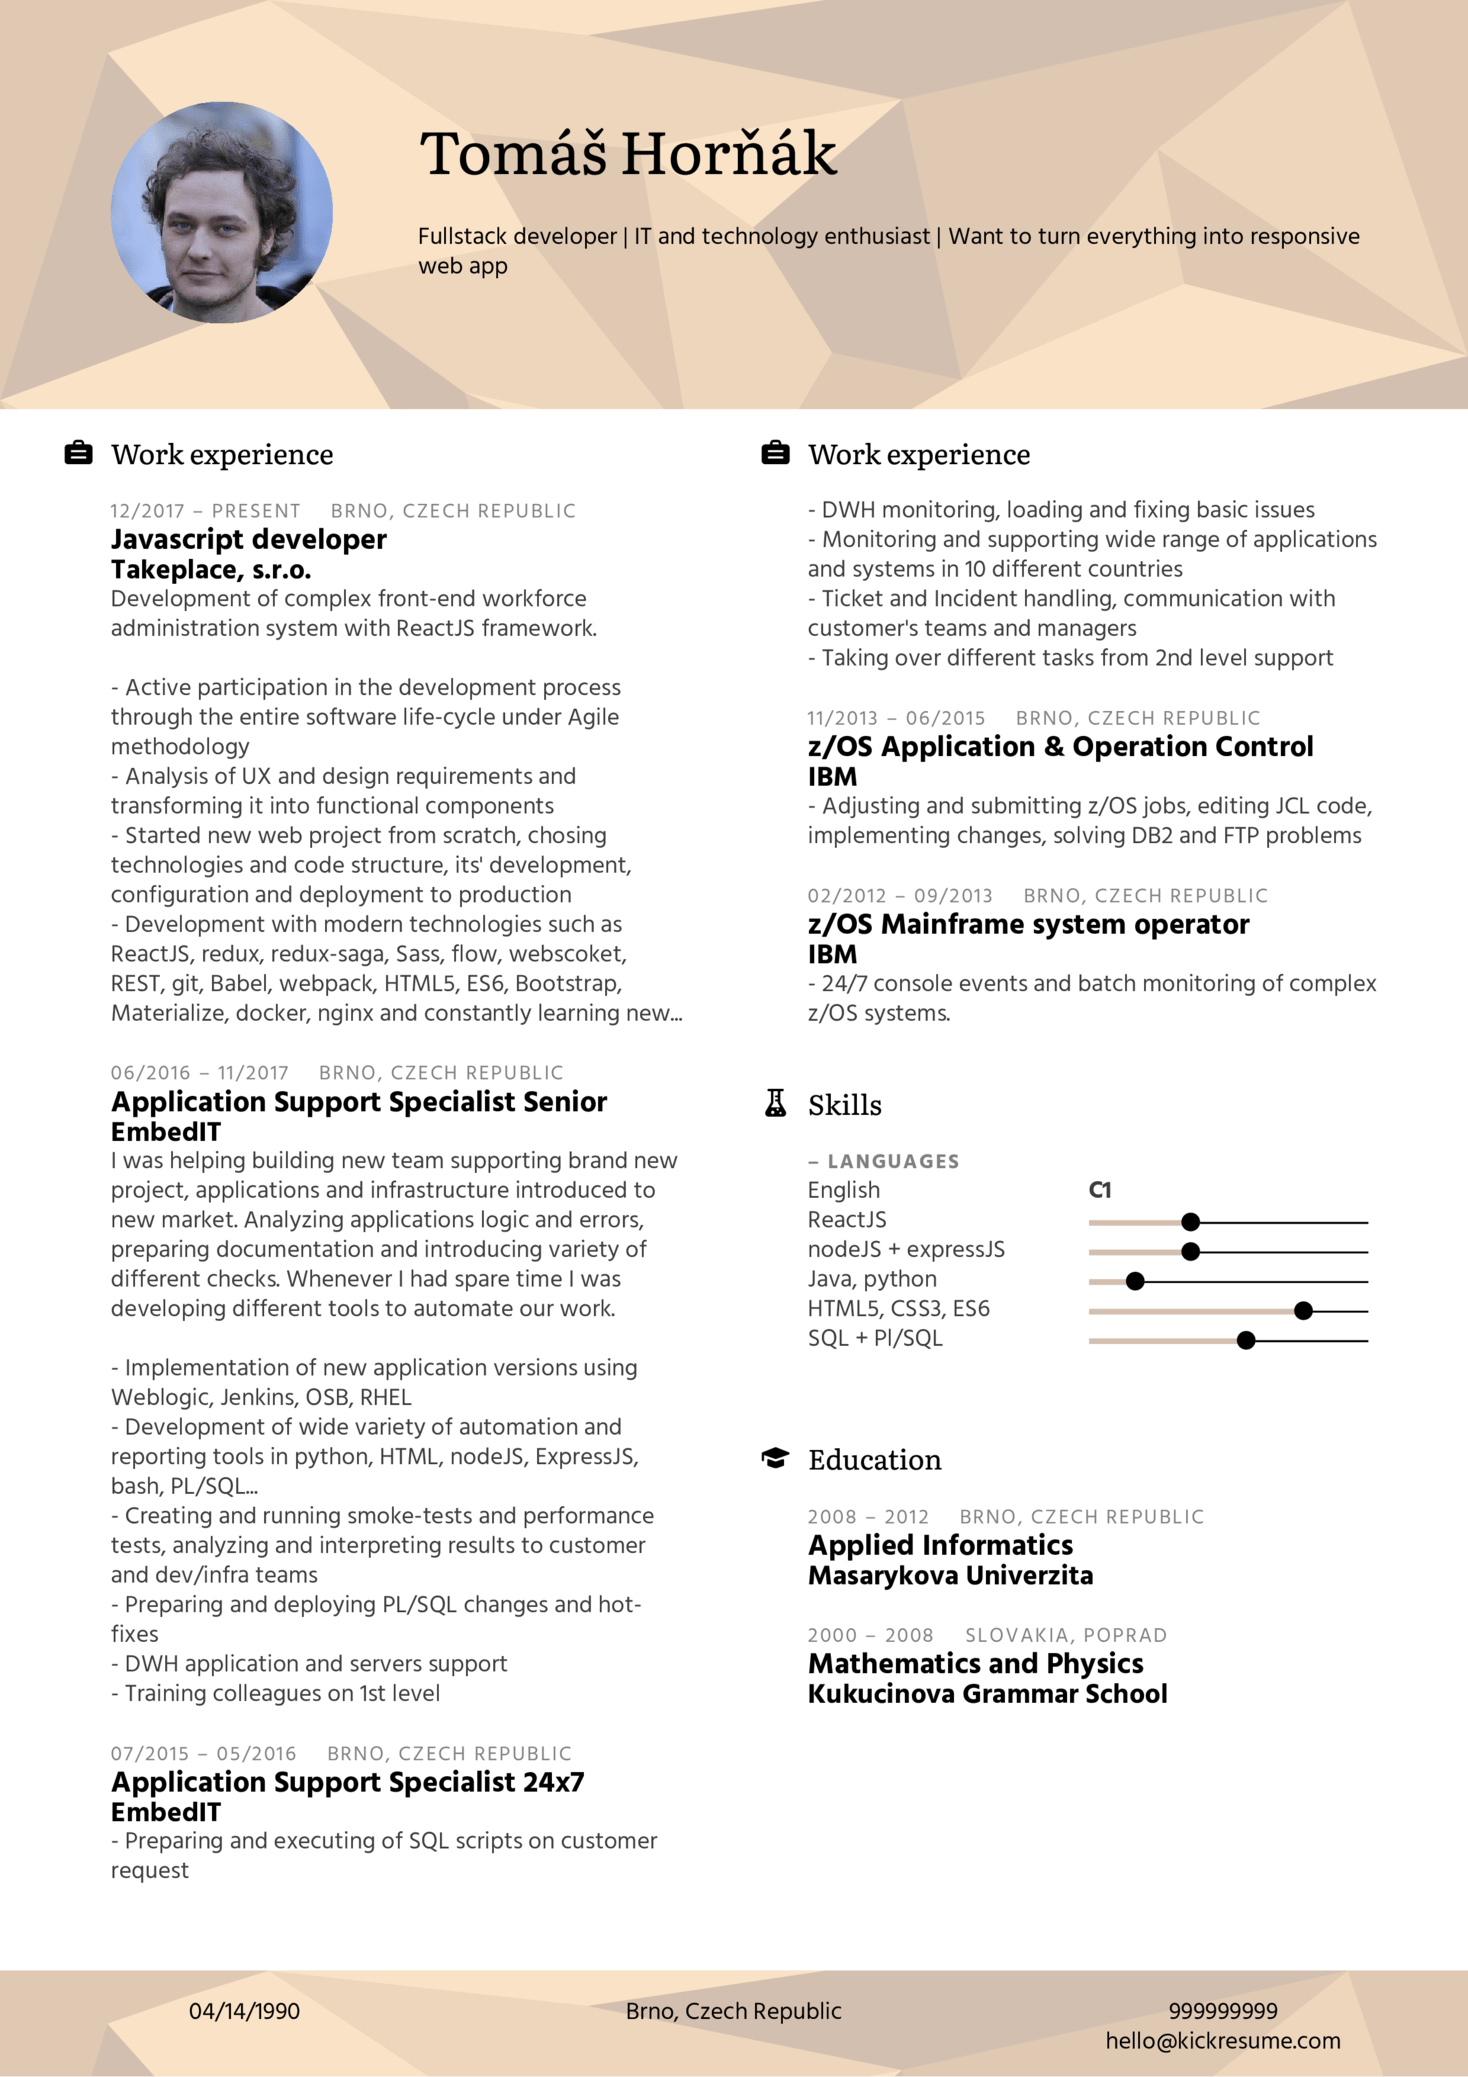 resume examples by real people takeplace java script web developer